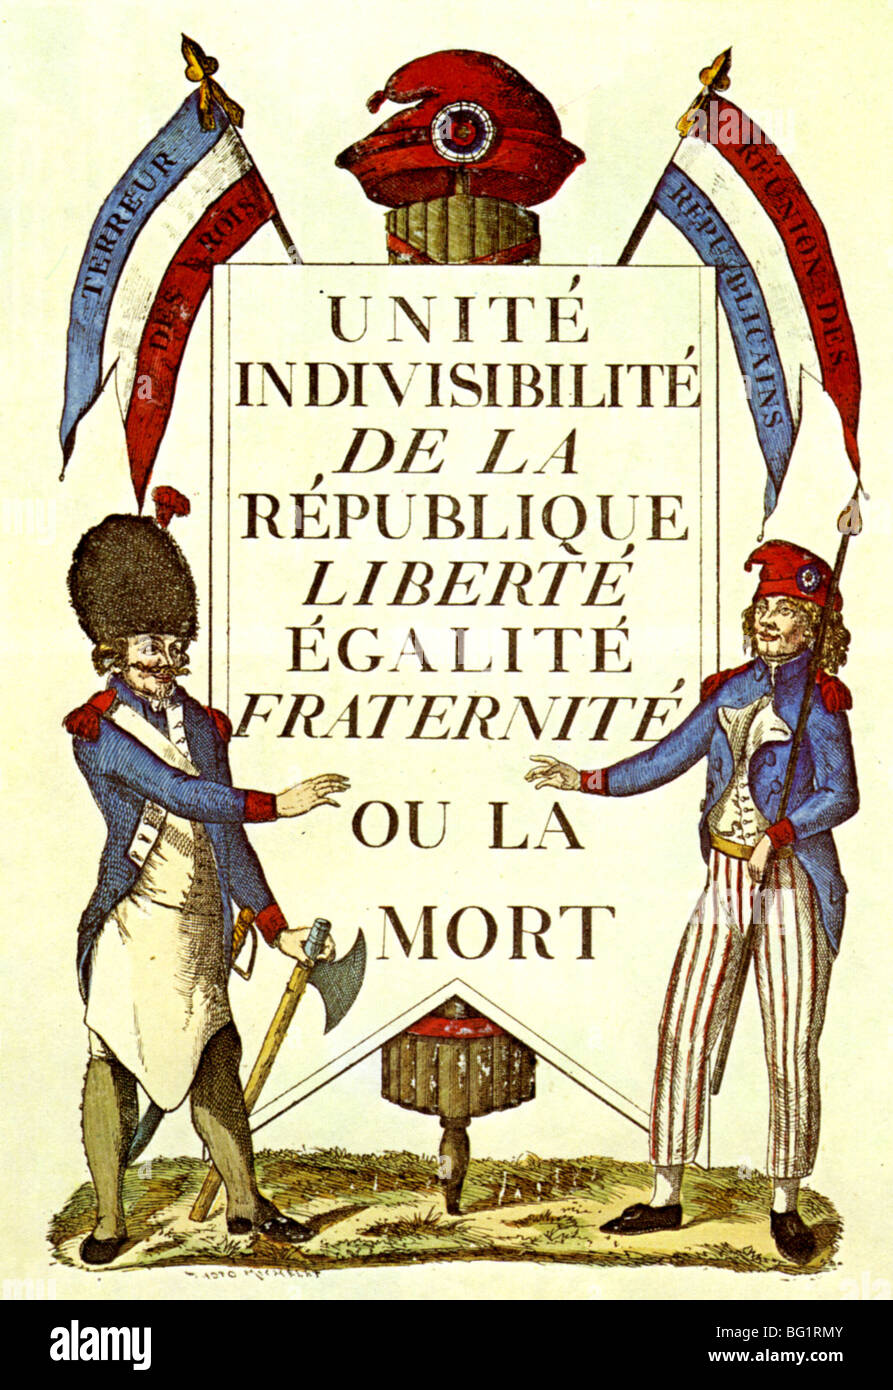 an analysis of the french revolution Help an analysis of the essential causes of the french revolution support new advent and get the full contents of this website as an instant download revolutions are.